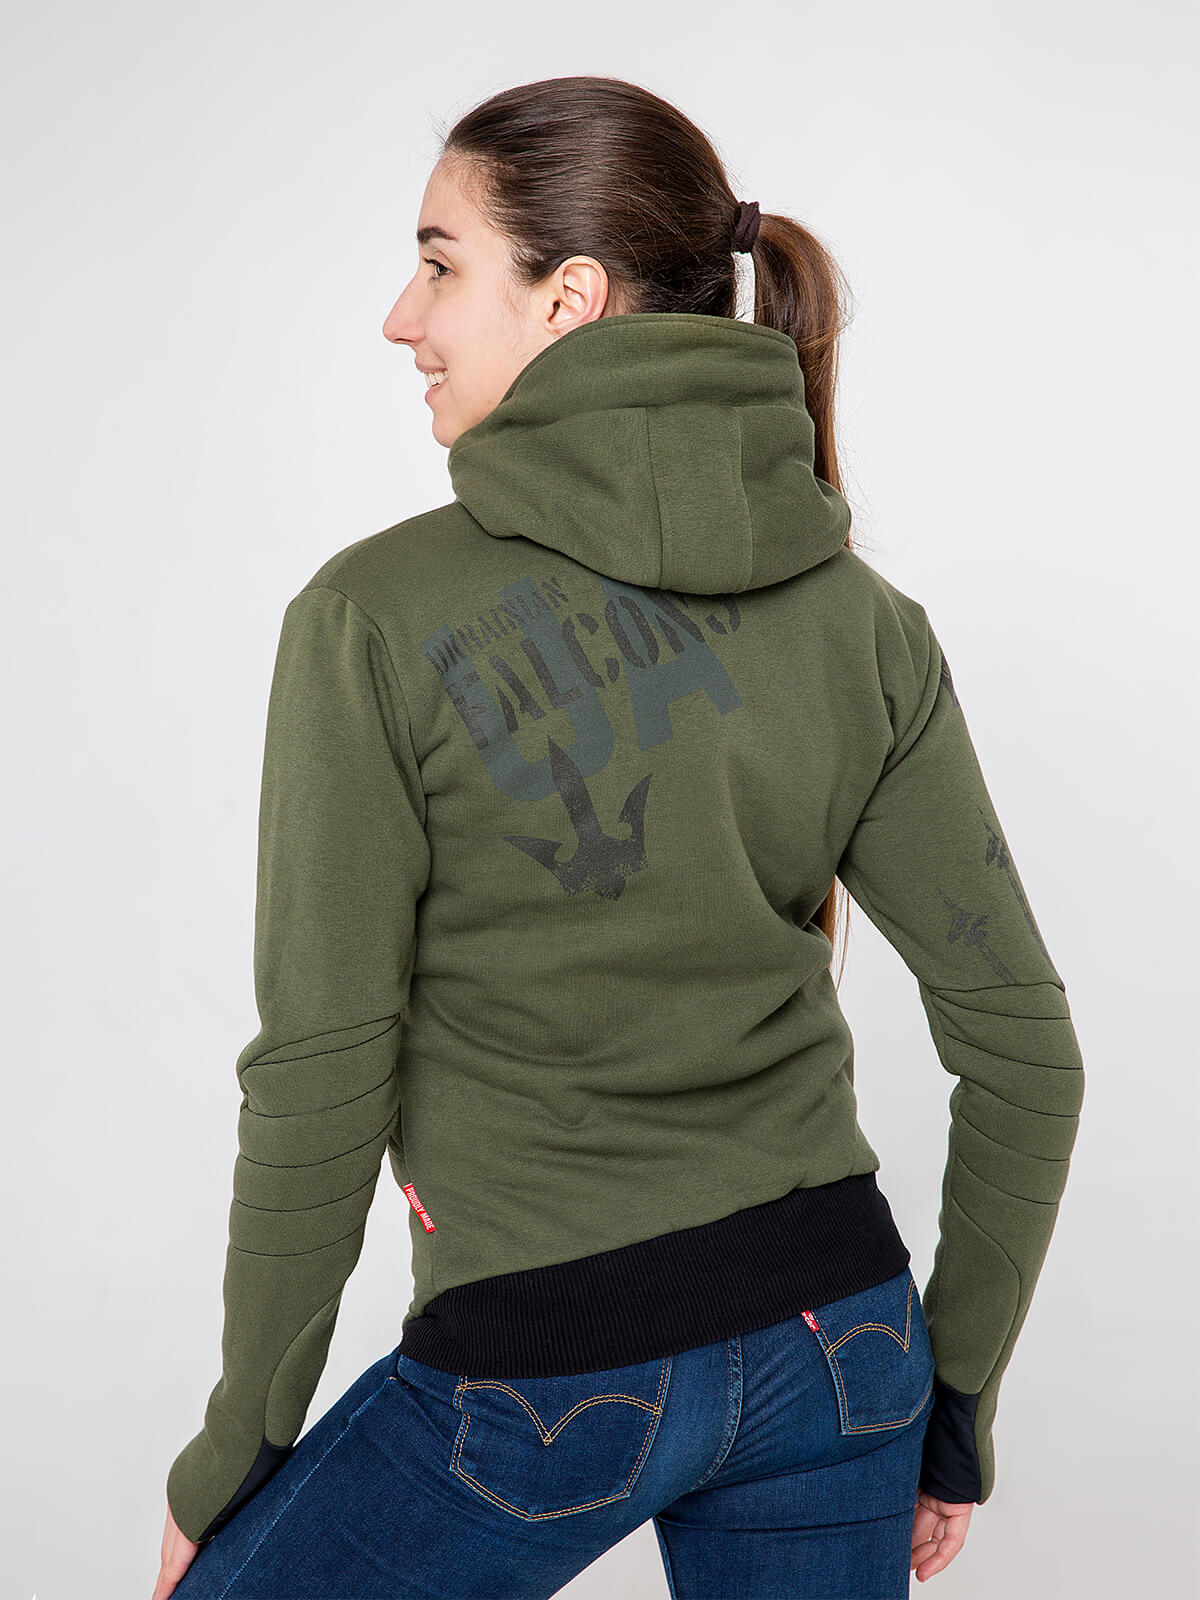 Women's Hoodie Ukrainian Falcons. Color khaki.  Technique of prints applied: silkscreen printing.